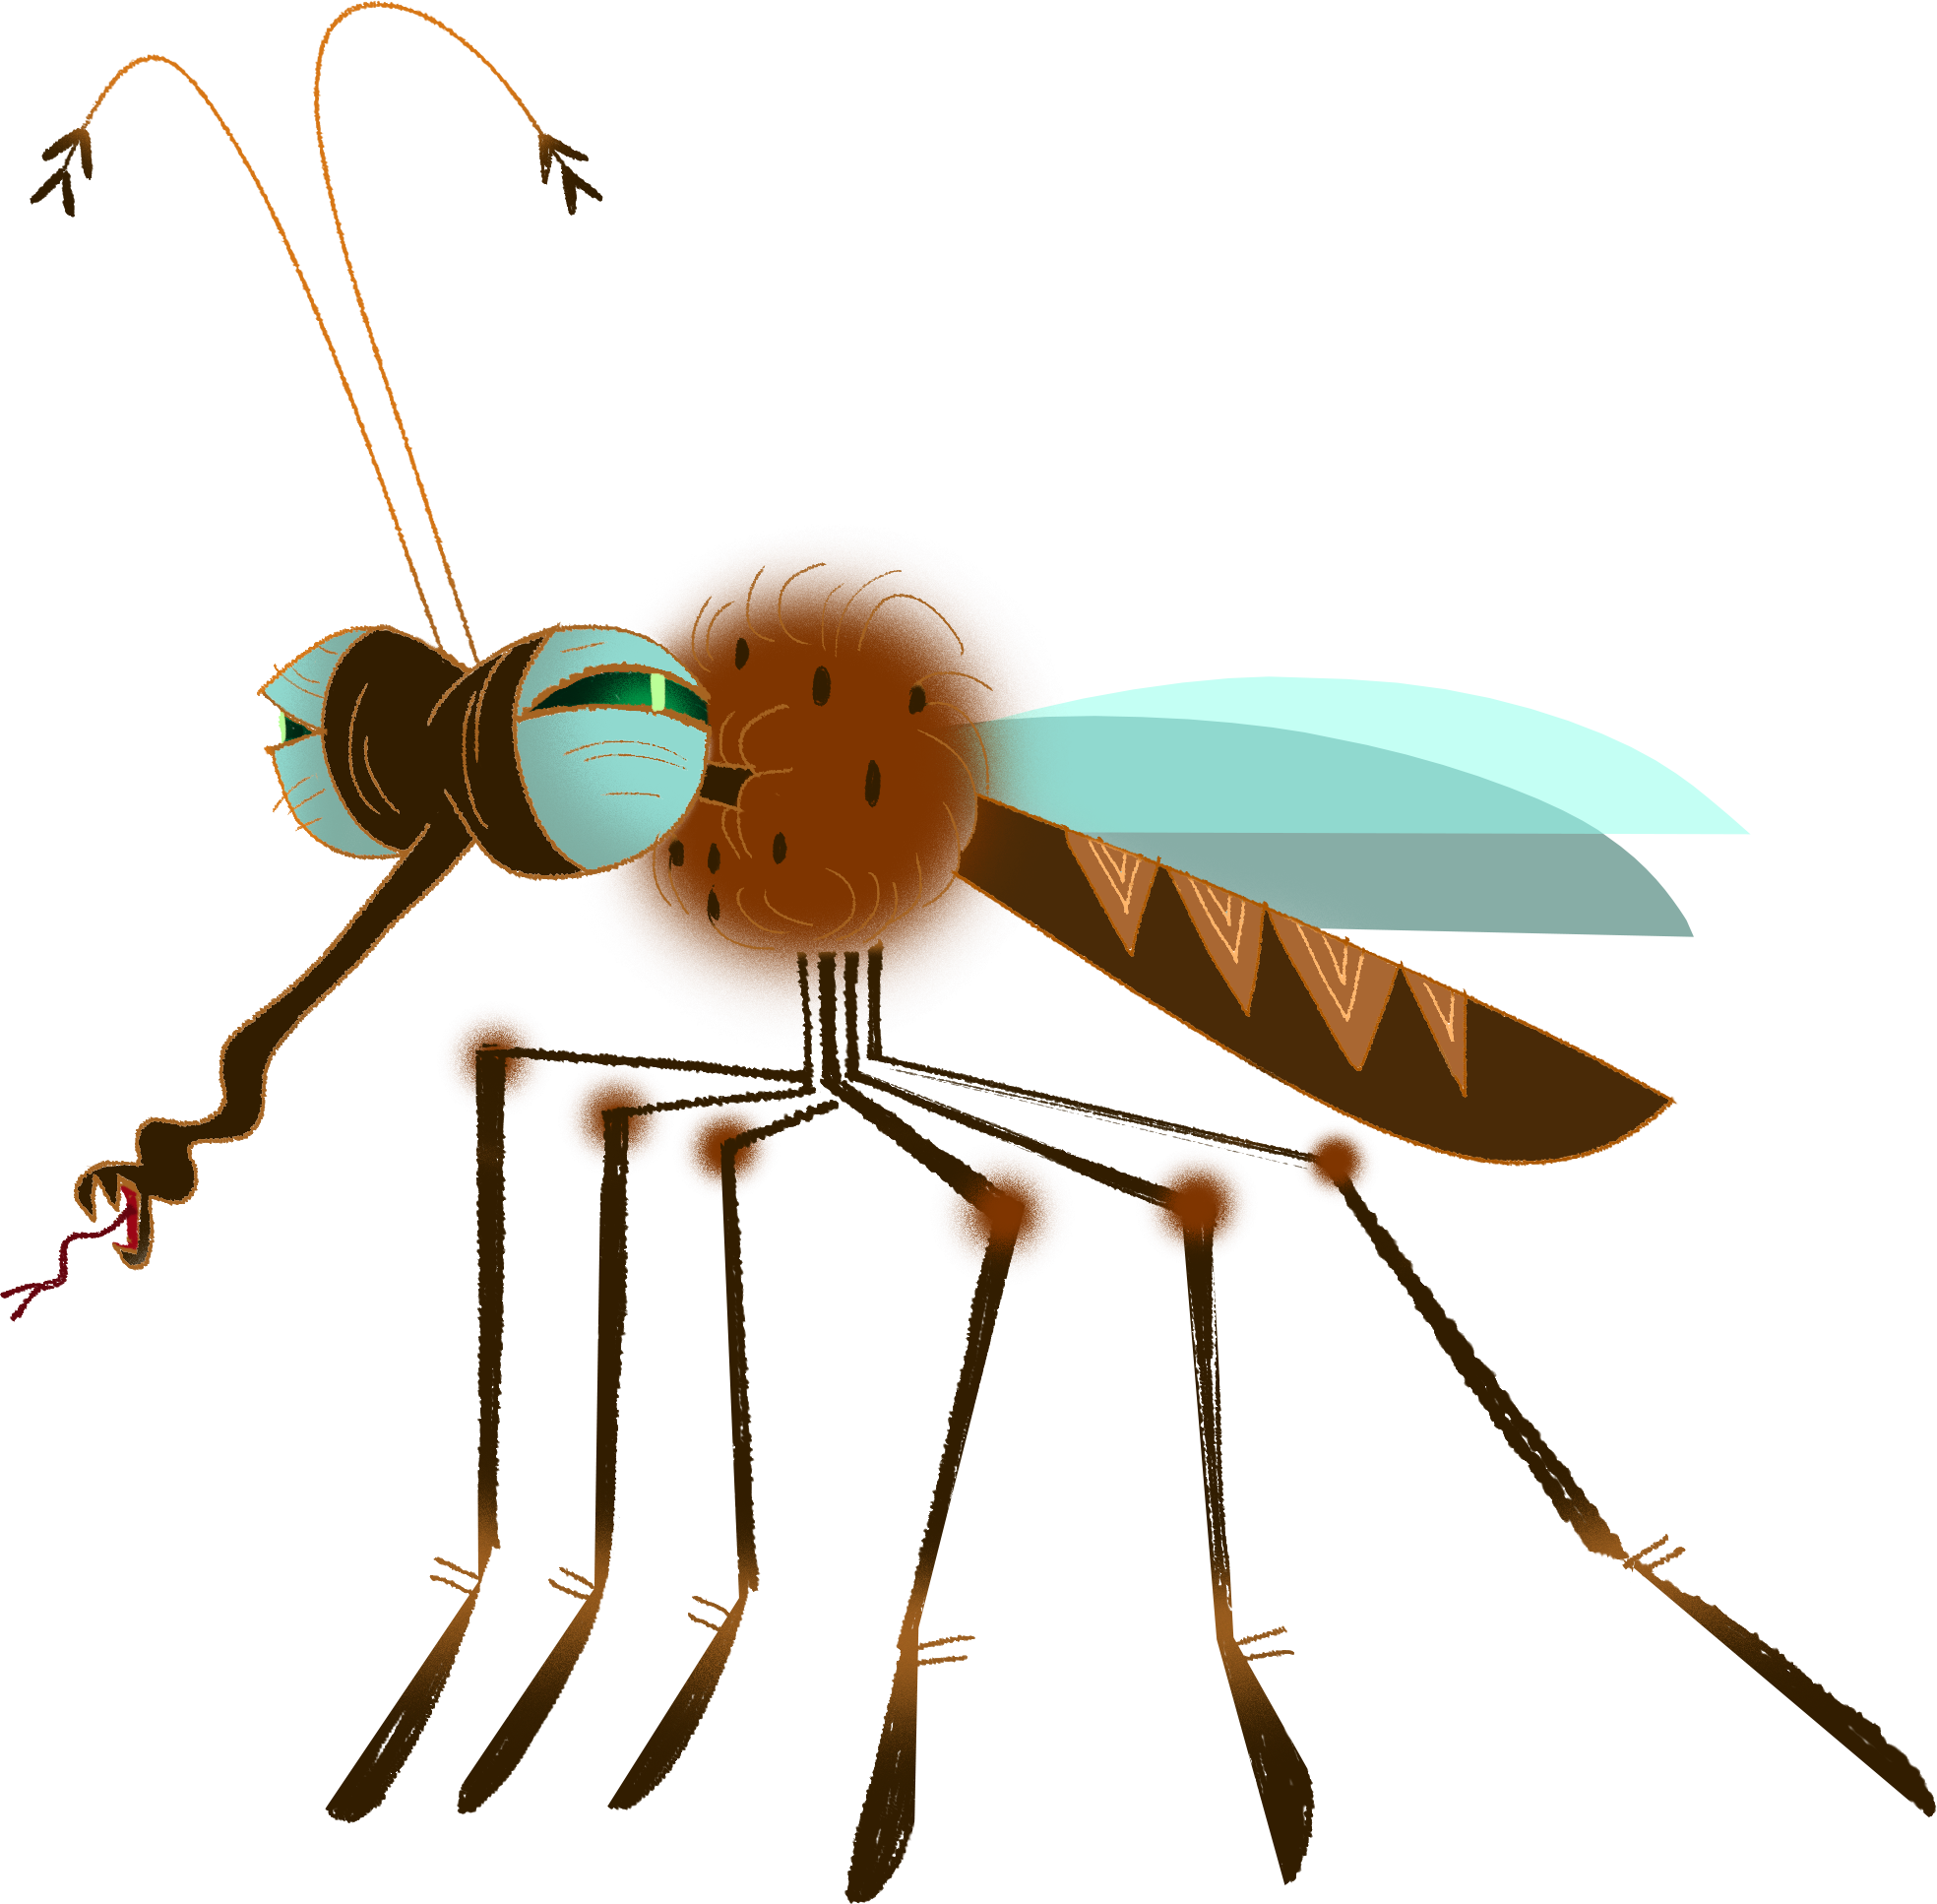 mosquito_01.png